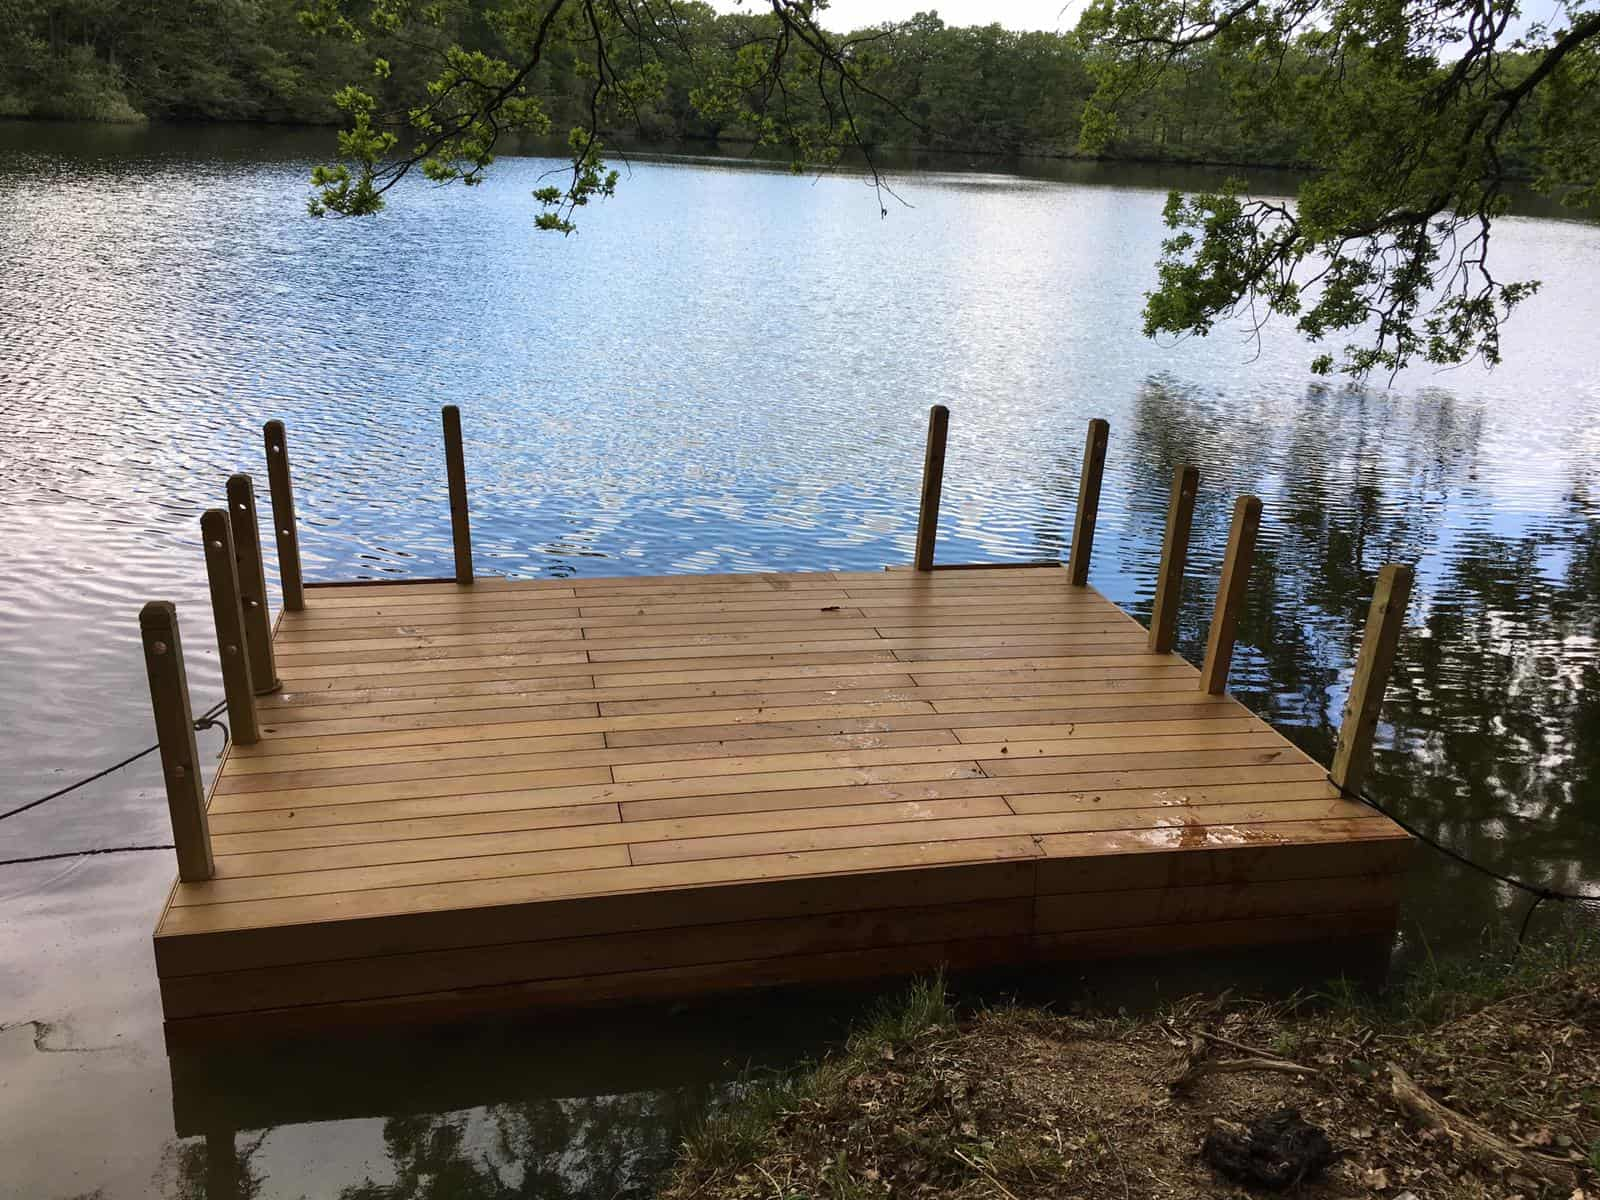 Decked pontoon with wooden handrails, almost finished.